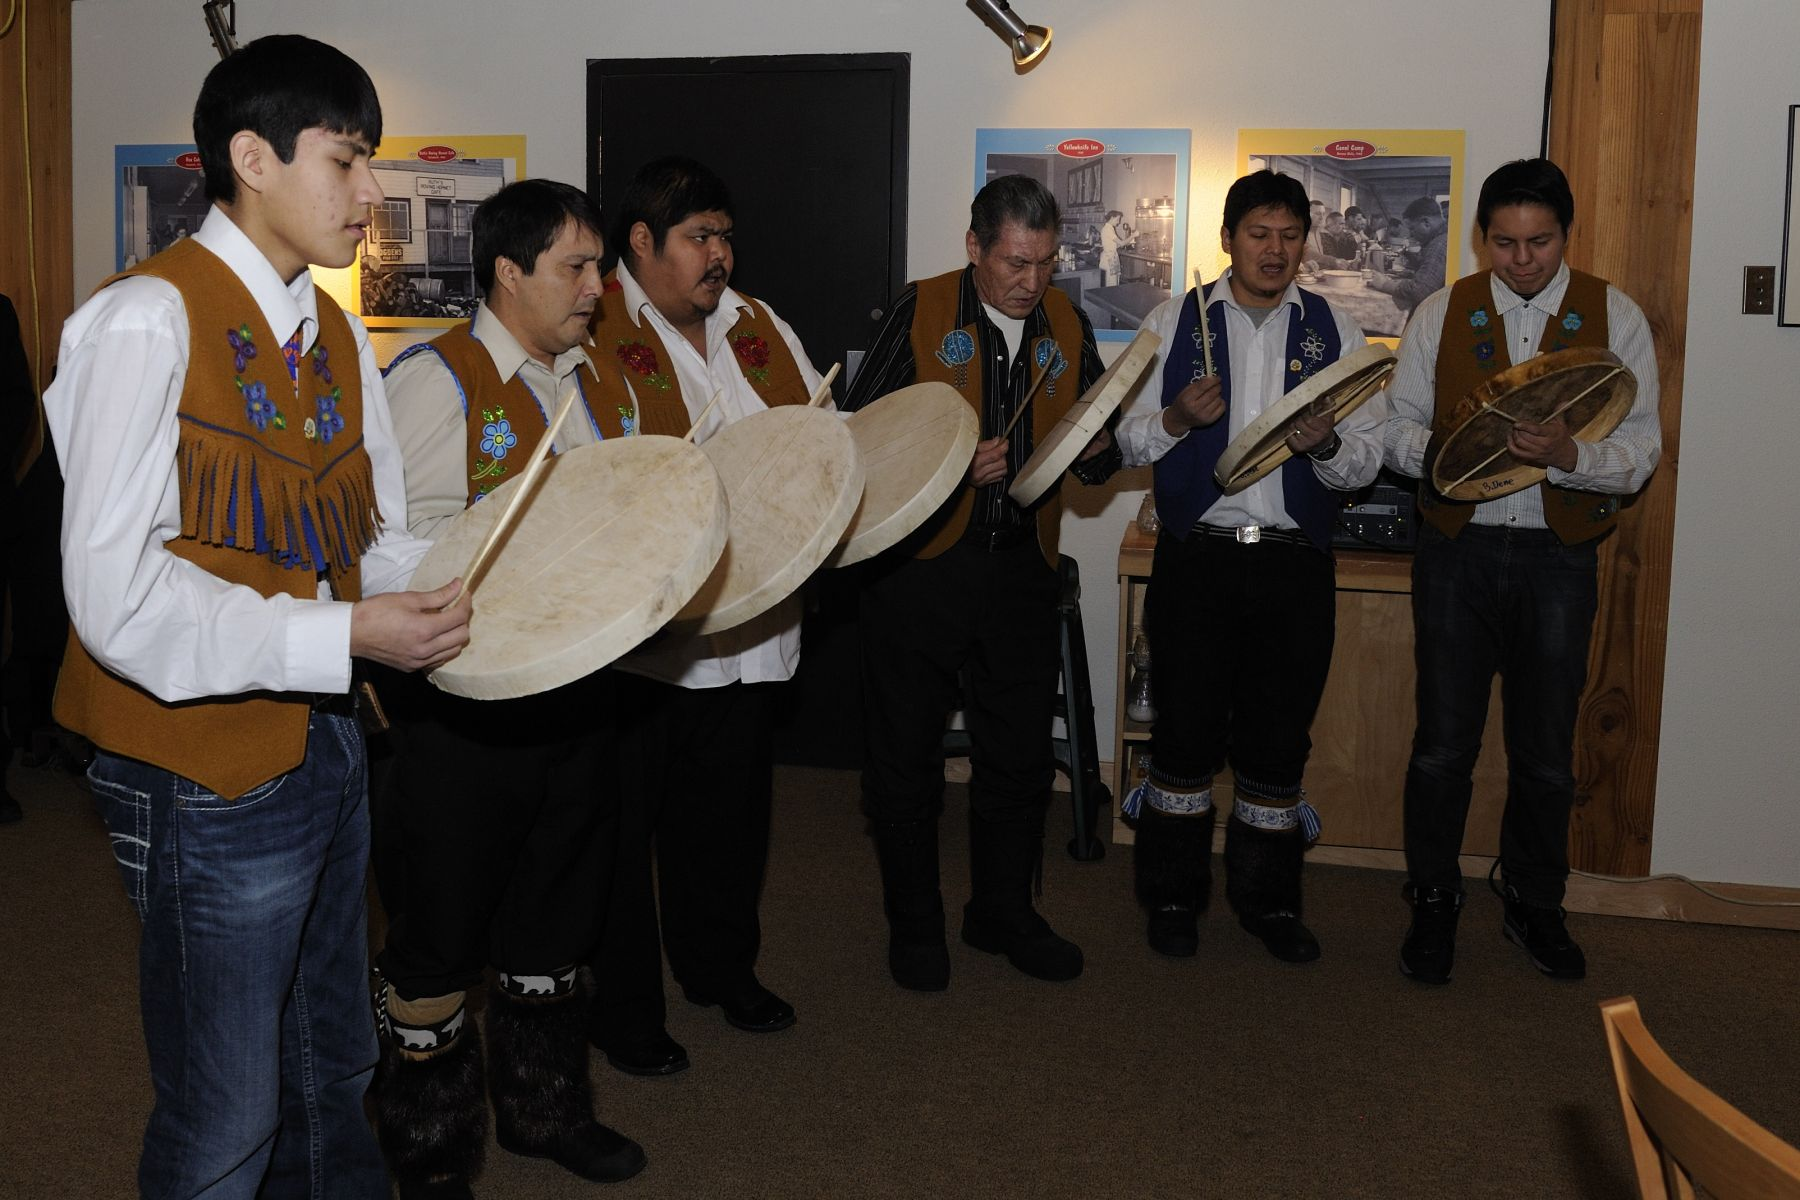 In the presence of  Elders, chiefs of the Tulita Dene region, researchers and high school students, Their Excellencies attended the opening of a new exhibit entitled Hunters of the Alpine Ice at the Prince of Wales Northern Heritage Centre.